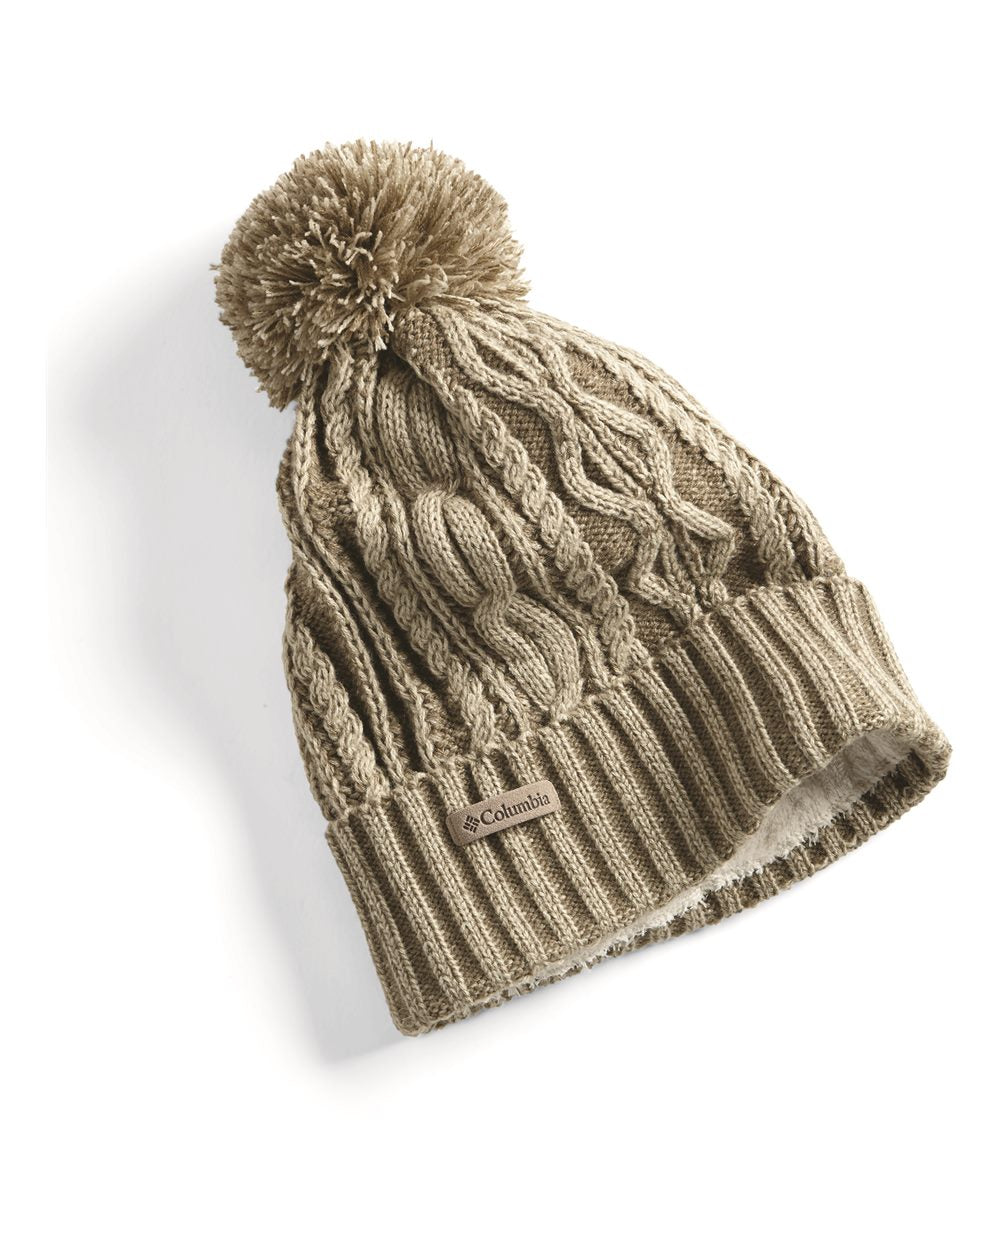 Columbia - Blizzard Pass Beanie – Route 66 Promotions 288f3fe93b85